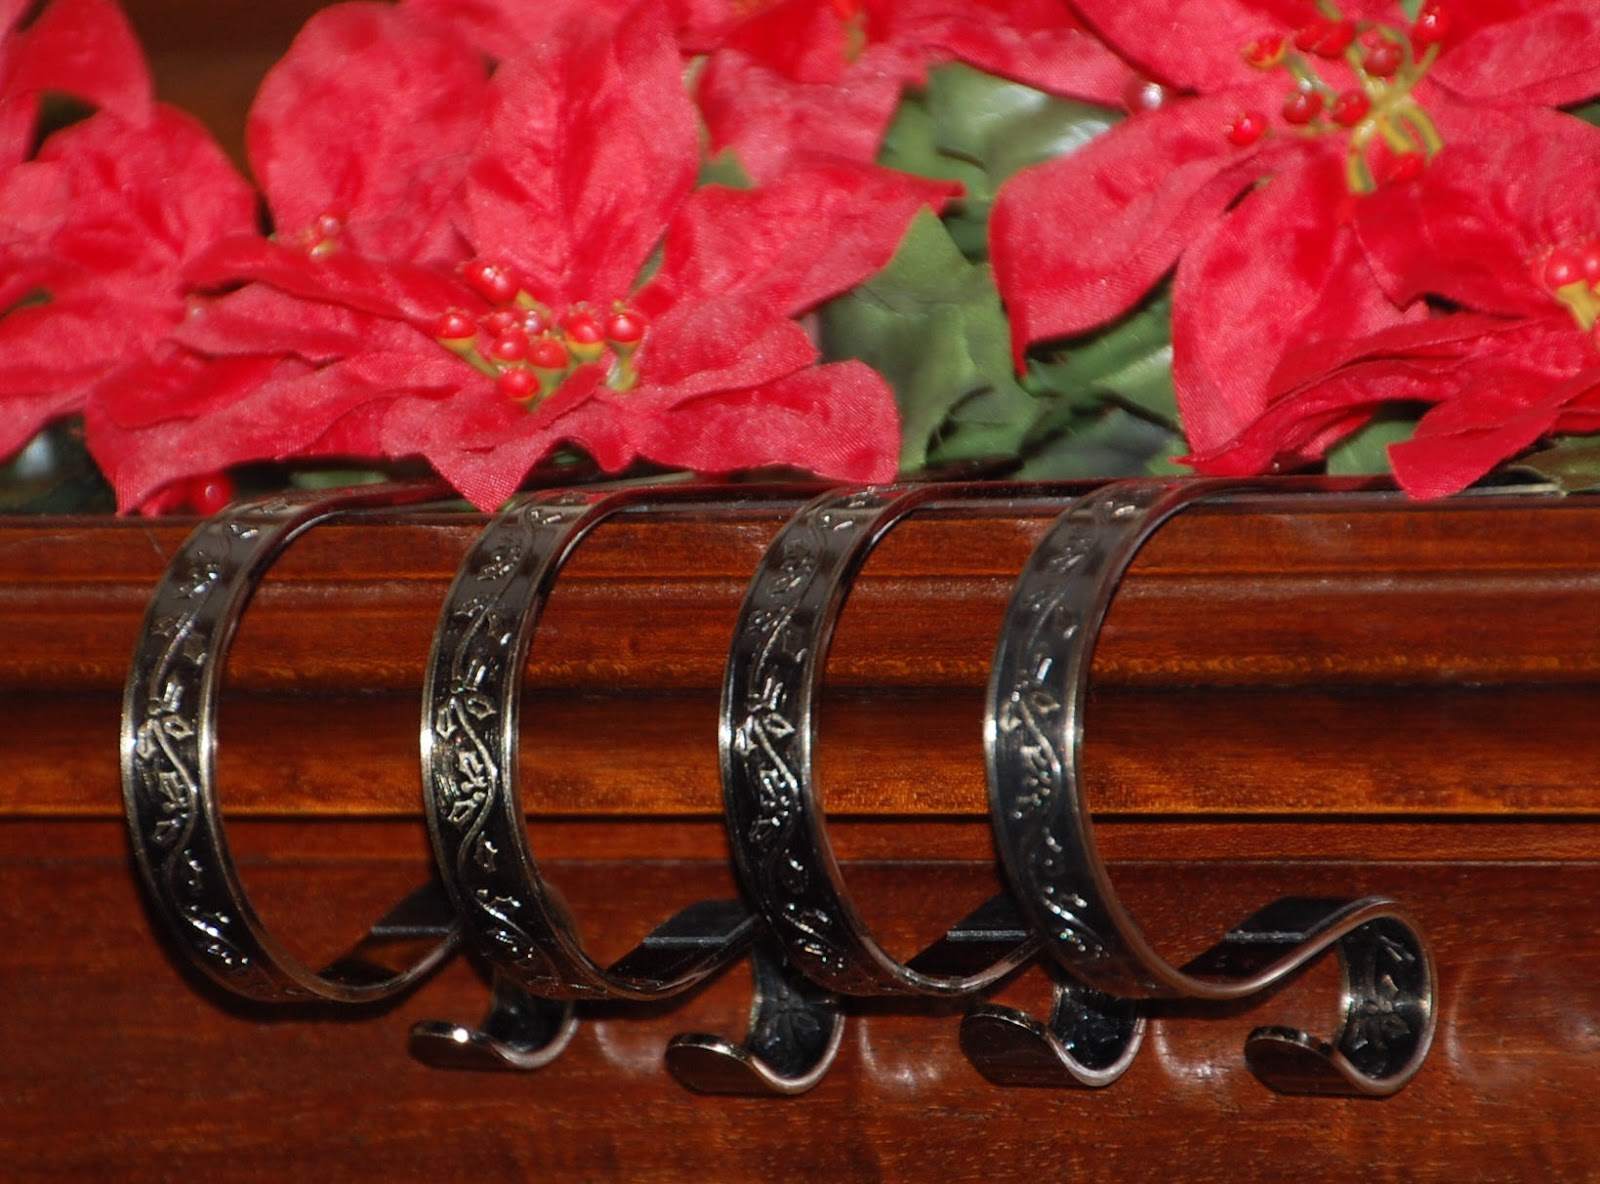 Top 28 - Mantle Holders - mantle sleigh stocking holder ...